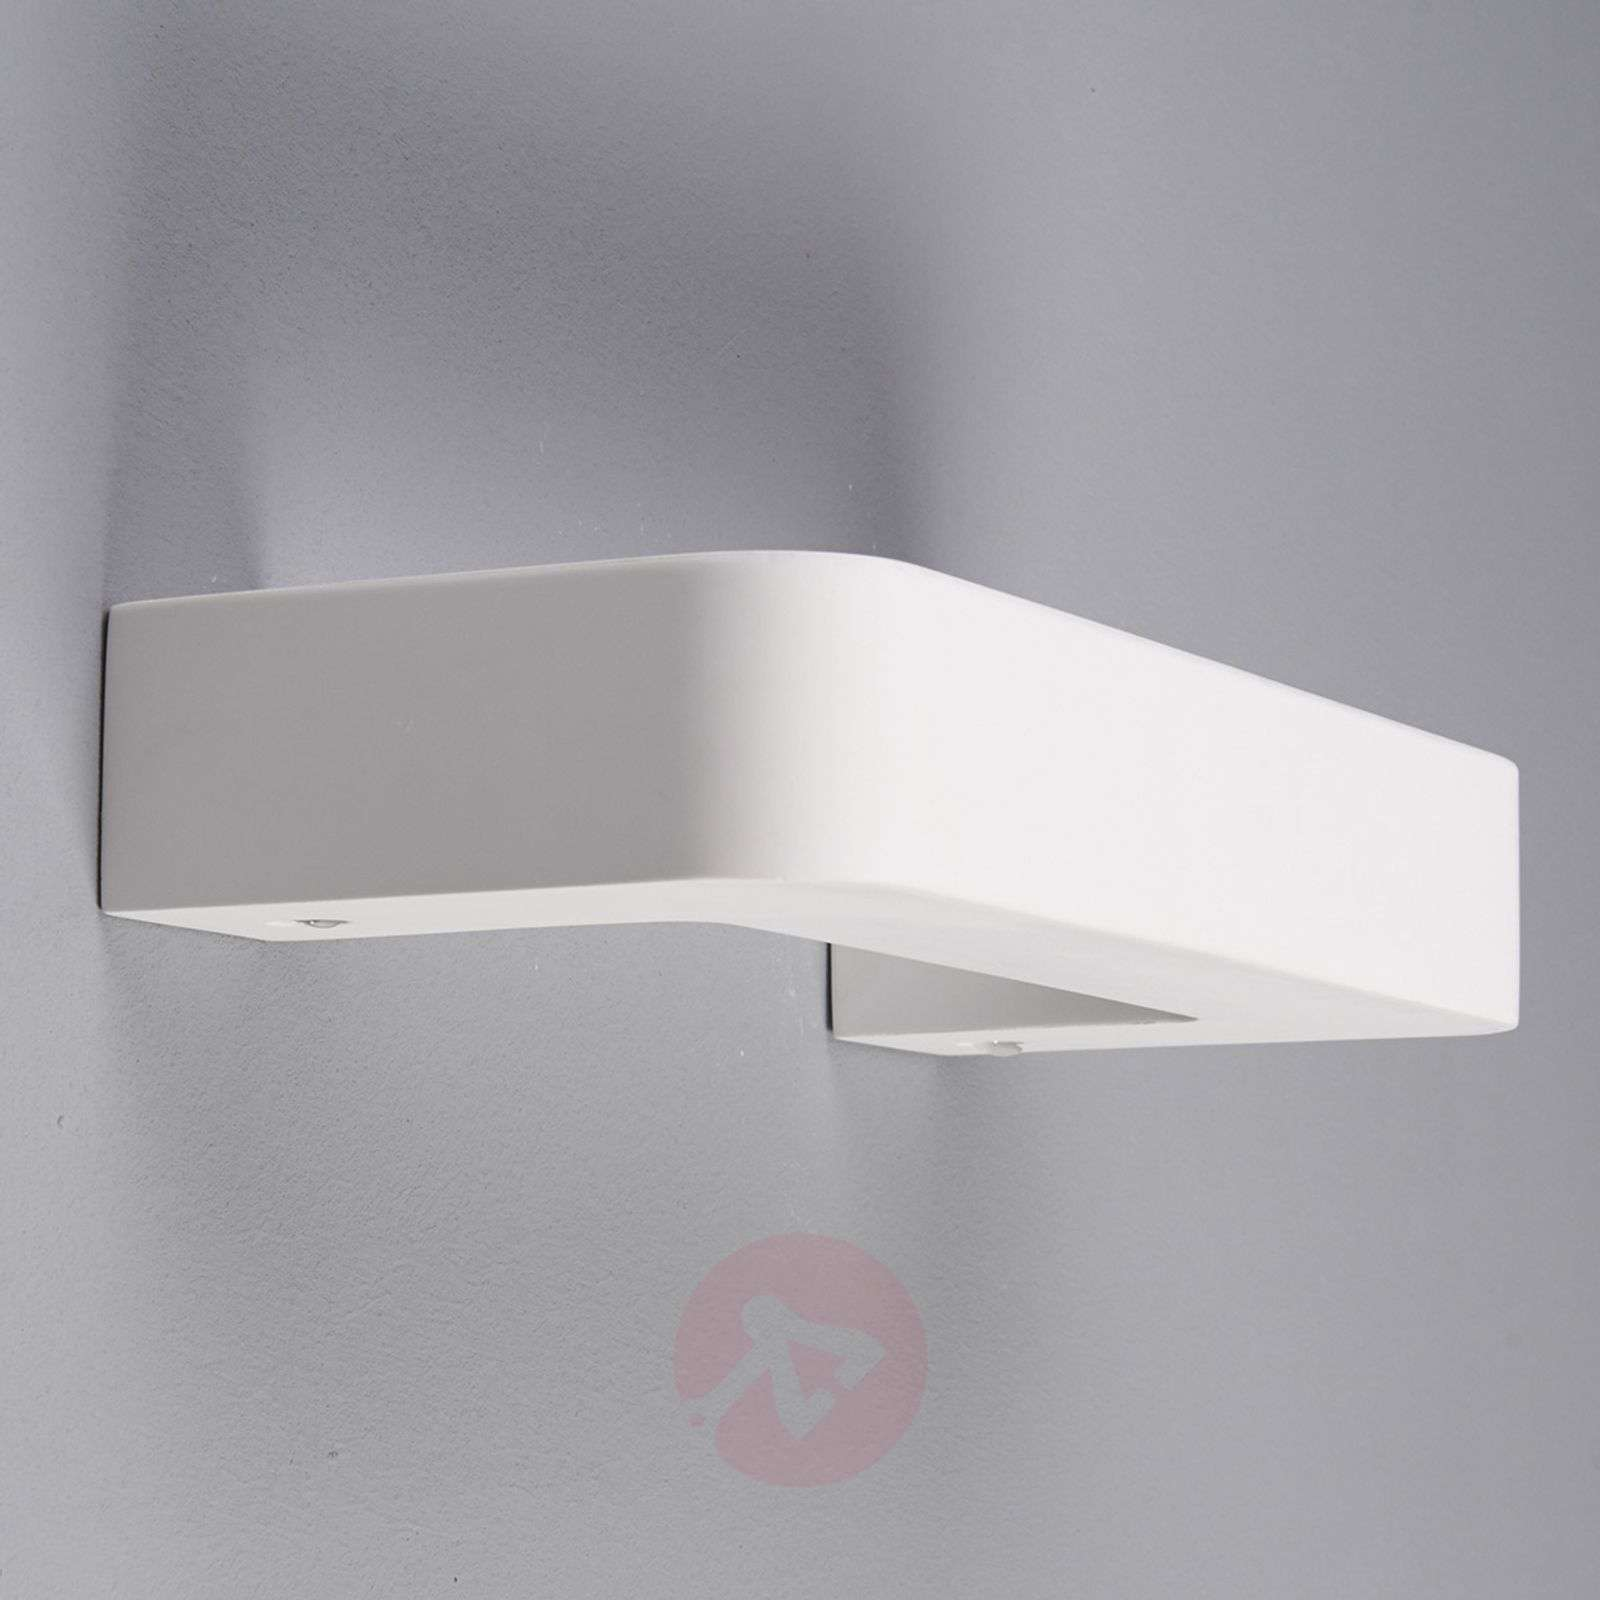 Isra Halogen Wall Light U-Shaped Plaster Lights.co.uk